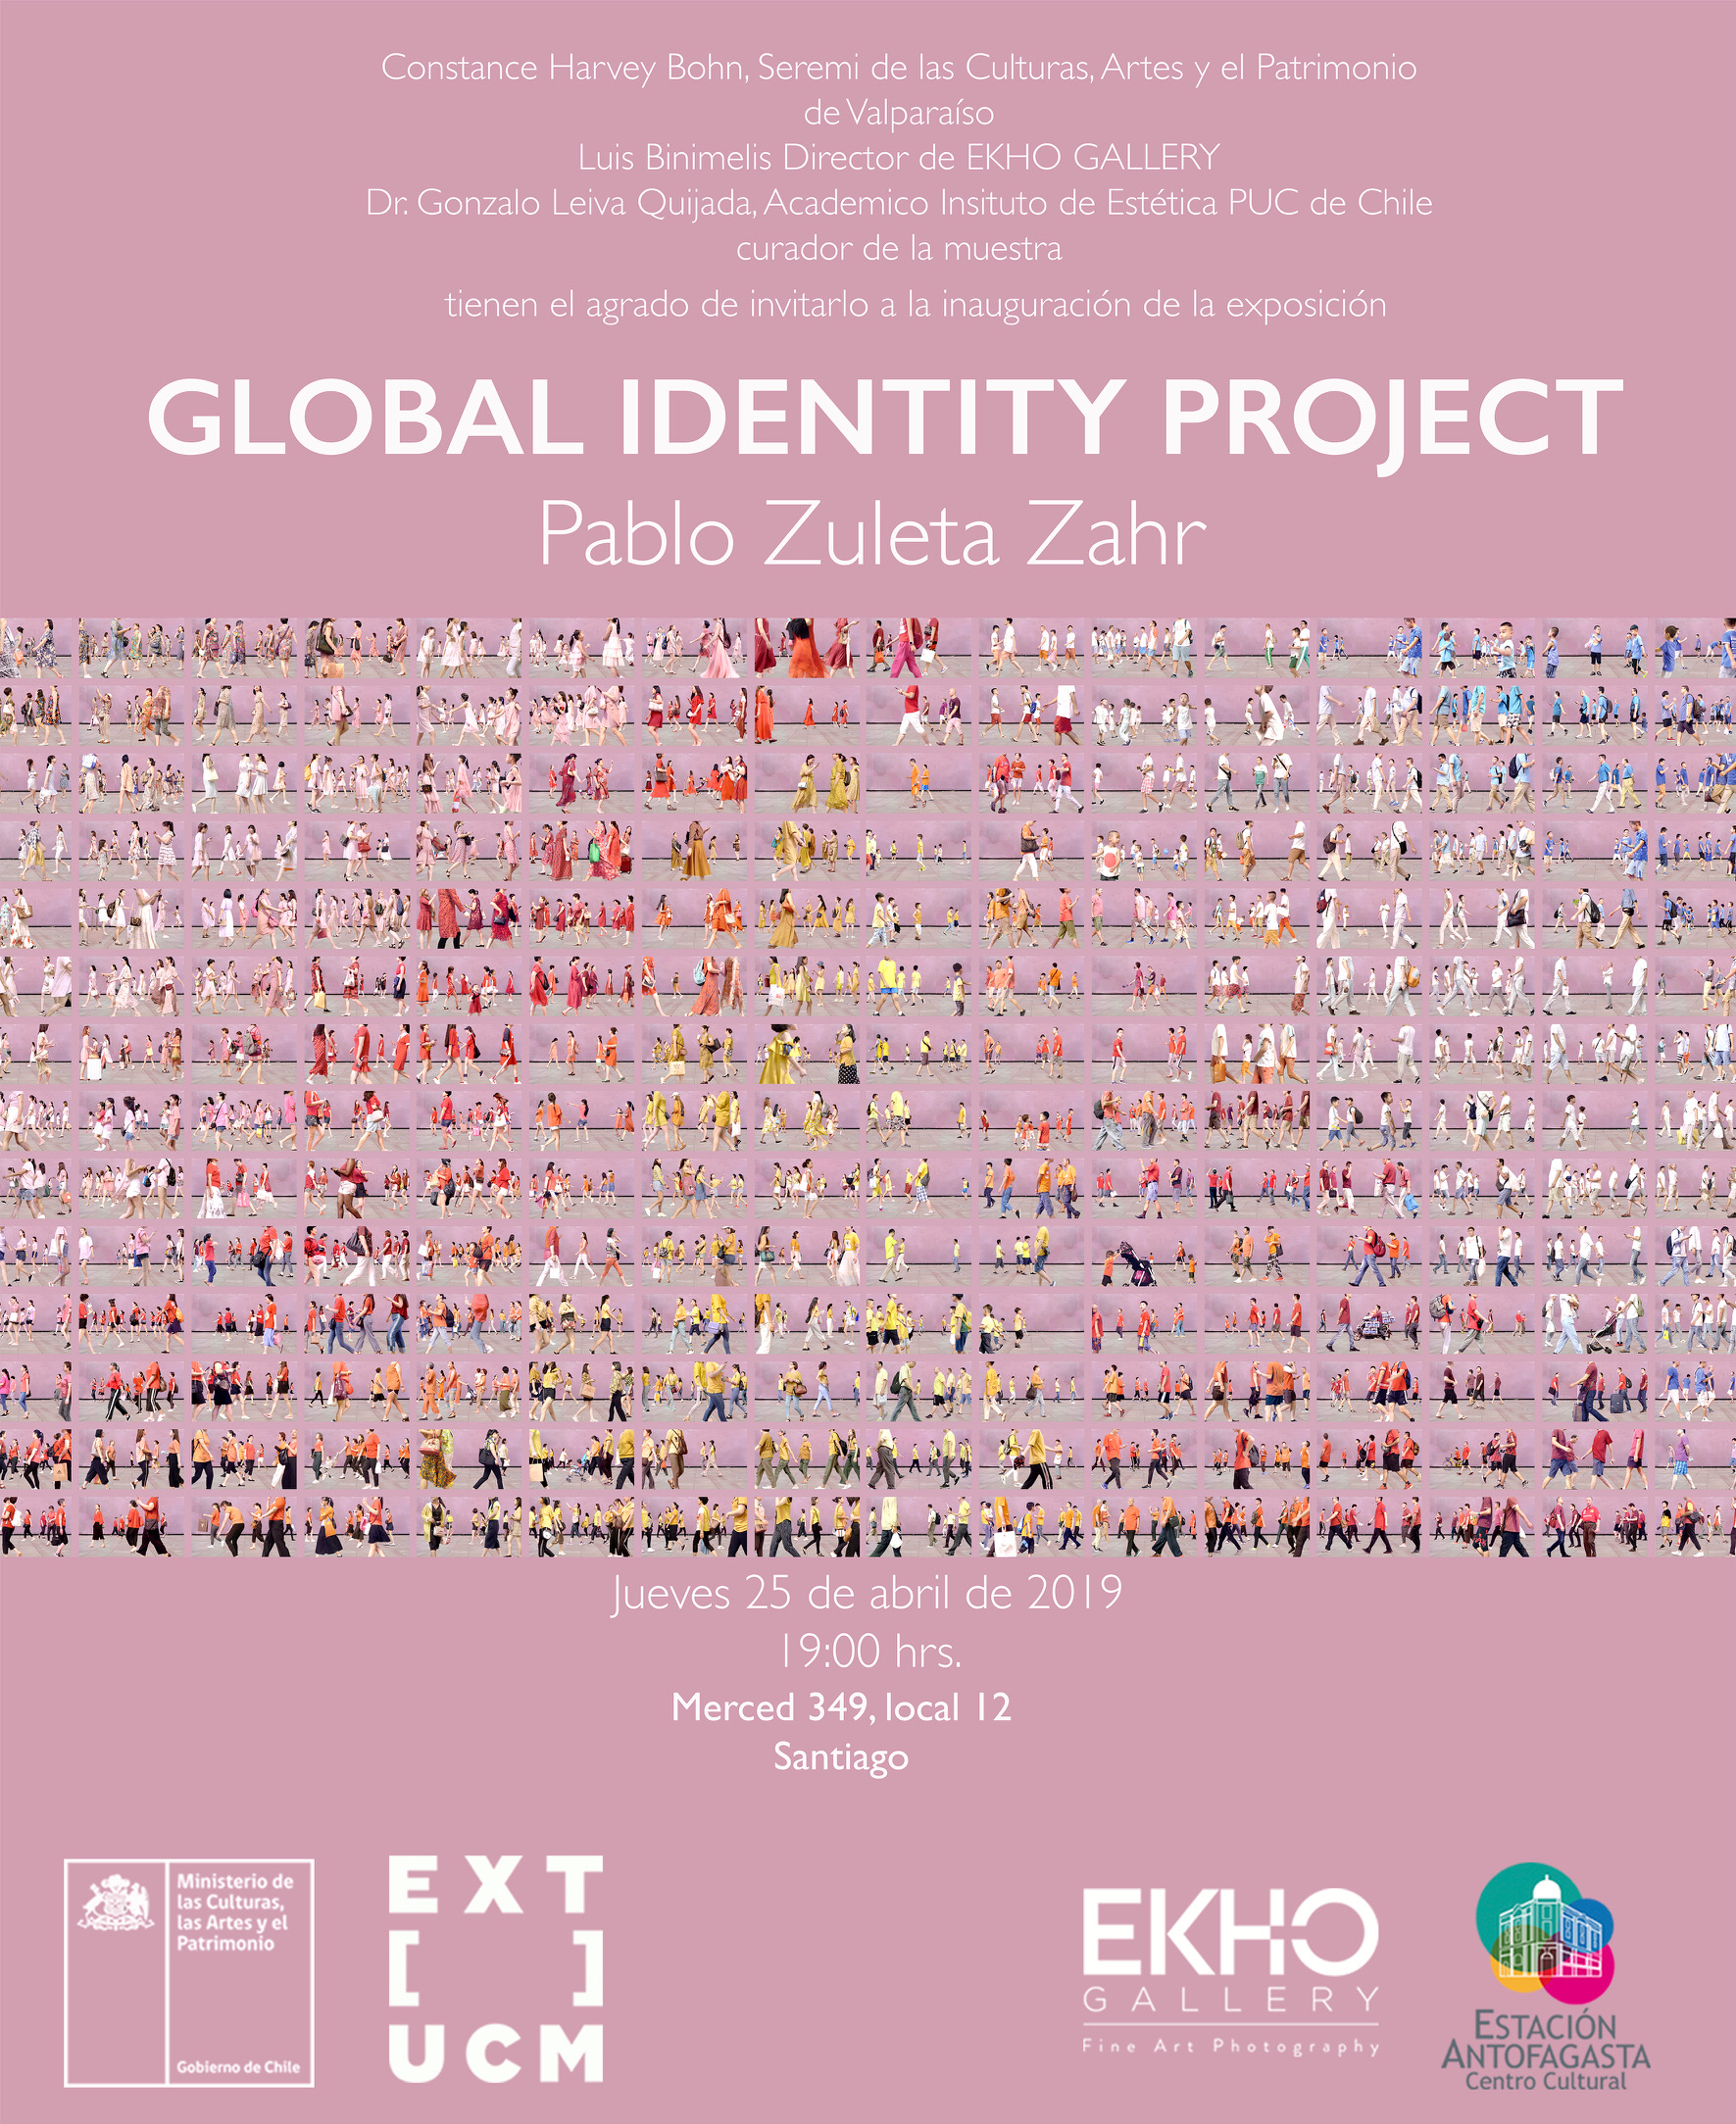 THE GLOBAL IDENTITY PROJECT